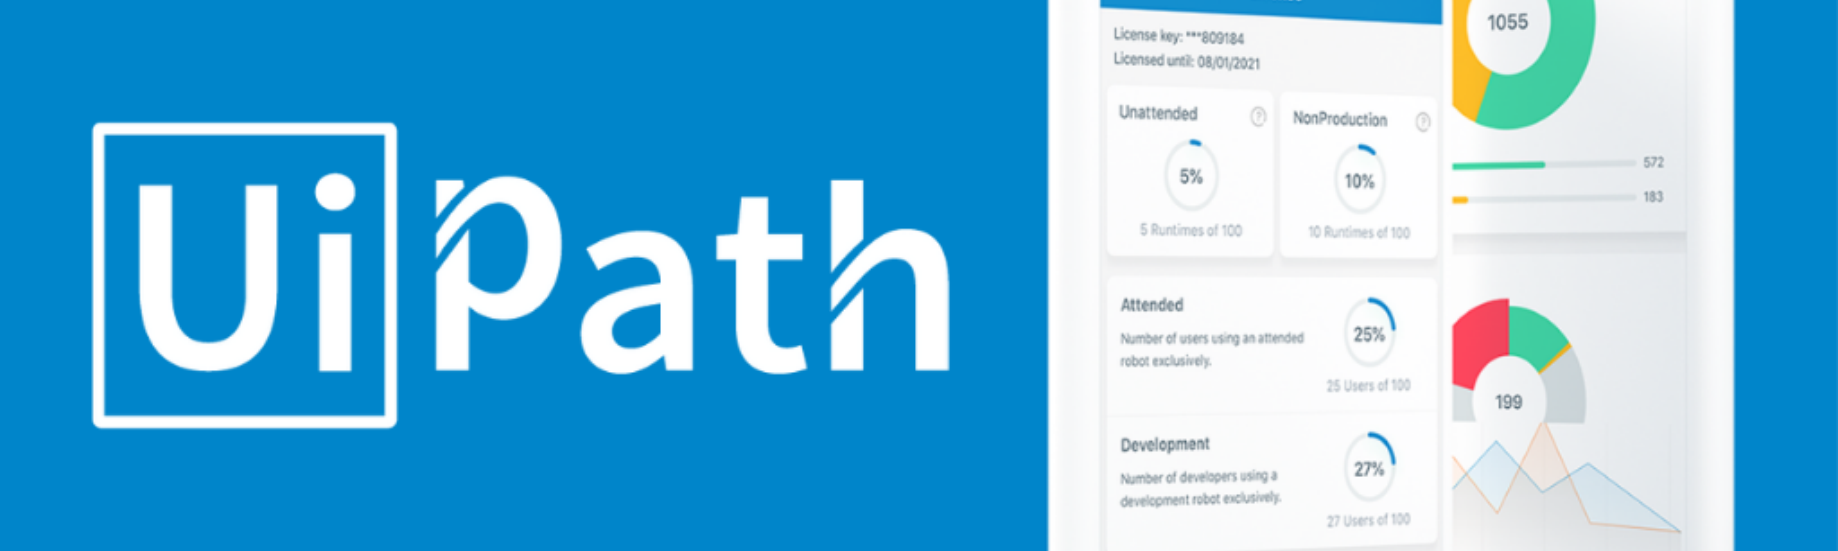 How to find license key in uipath | Who can use the free version of